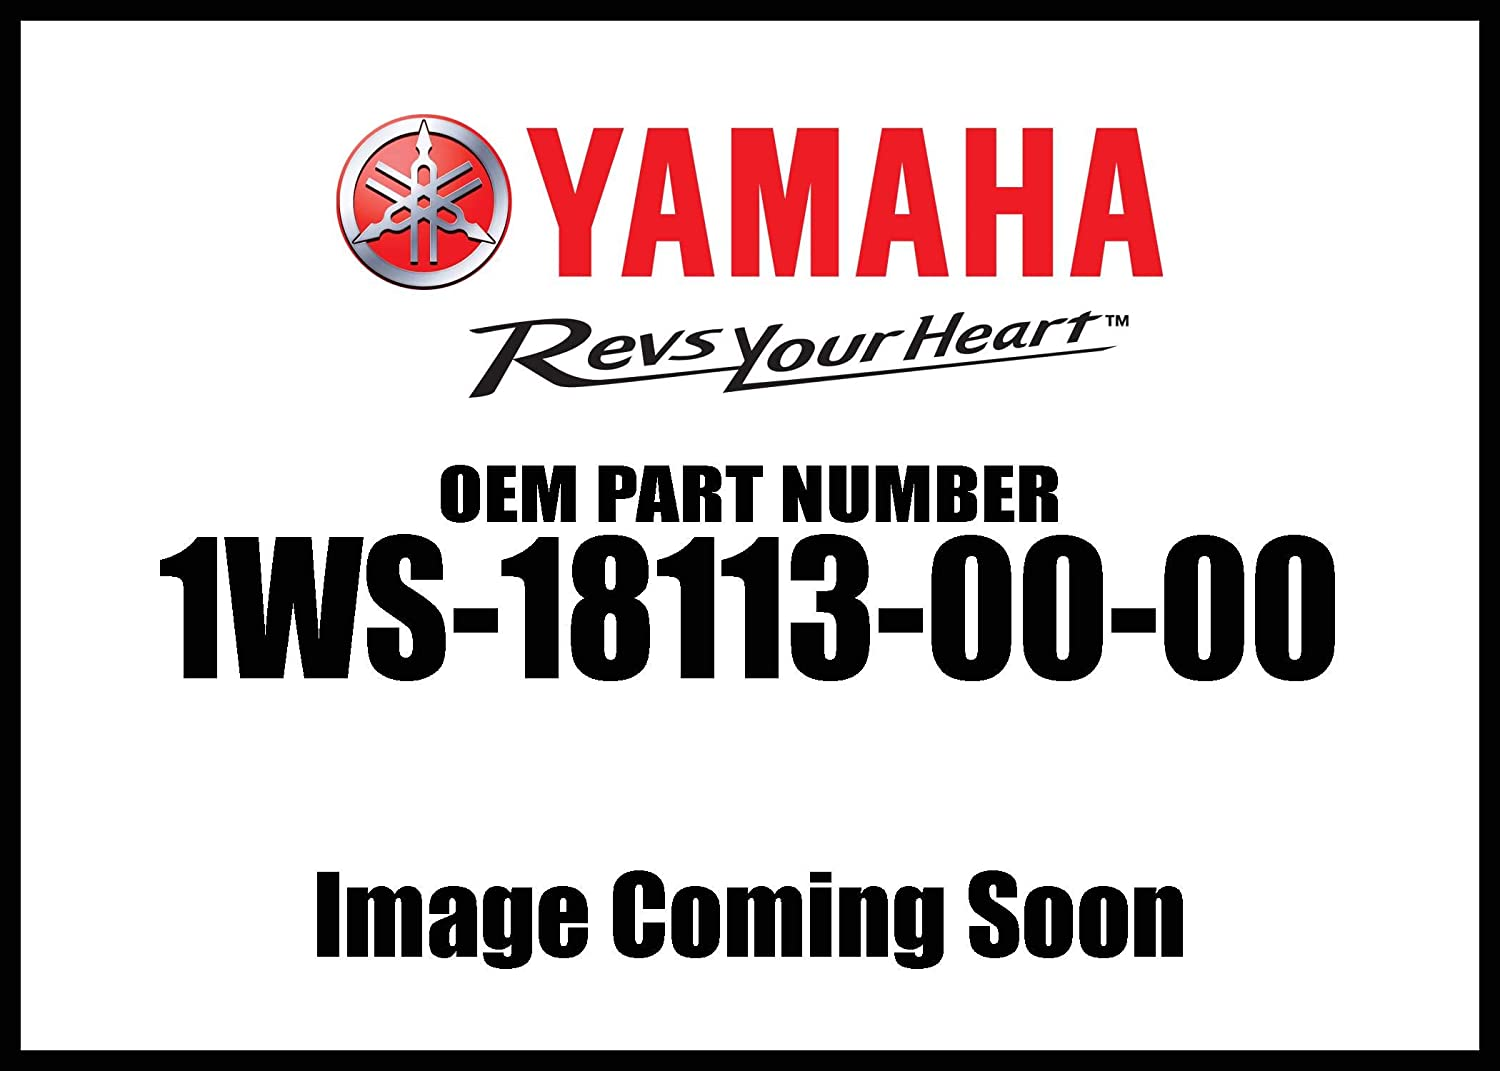 Yamaha 2015-2018 Fz07 Fz07 Abs Shift Pedal Cover 1Ws-18113-00-00 New Oem